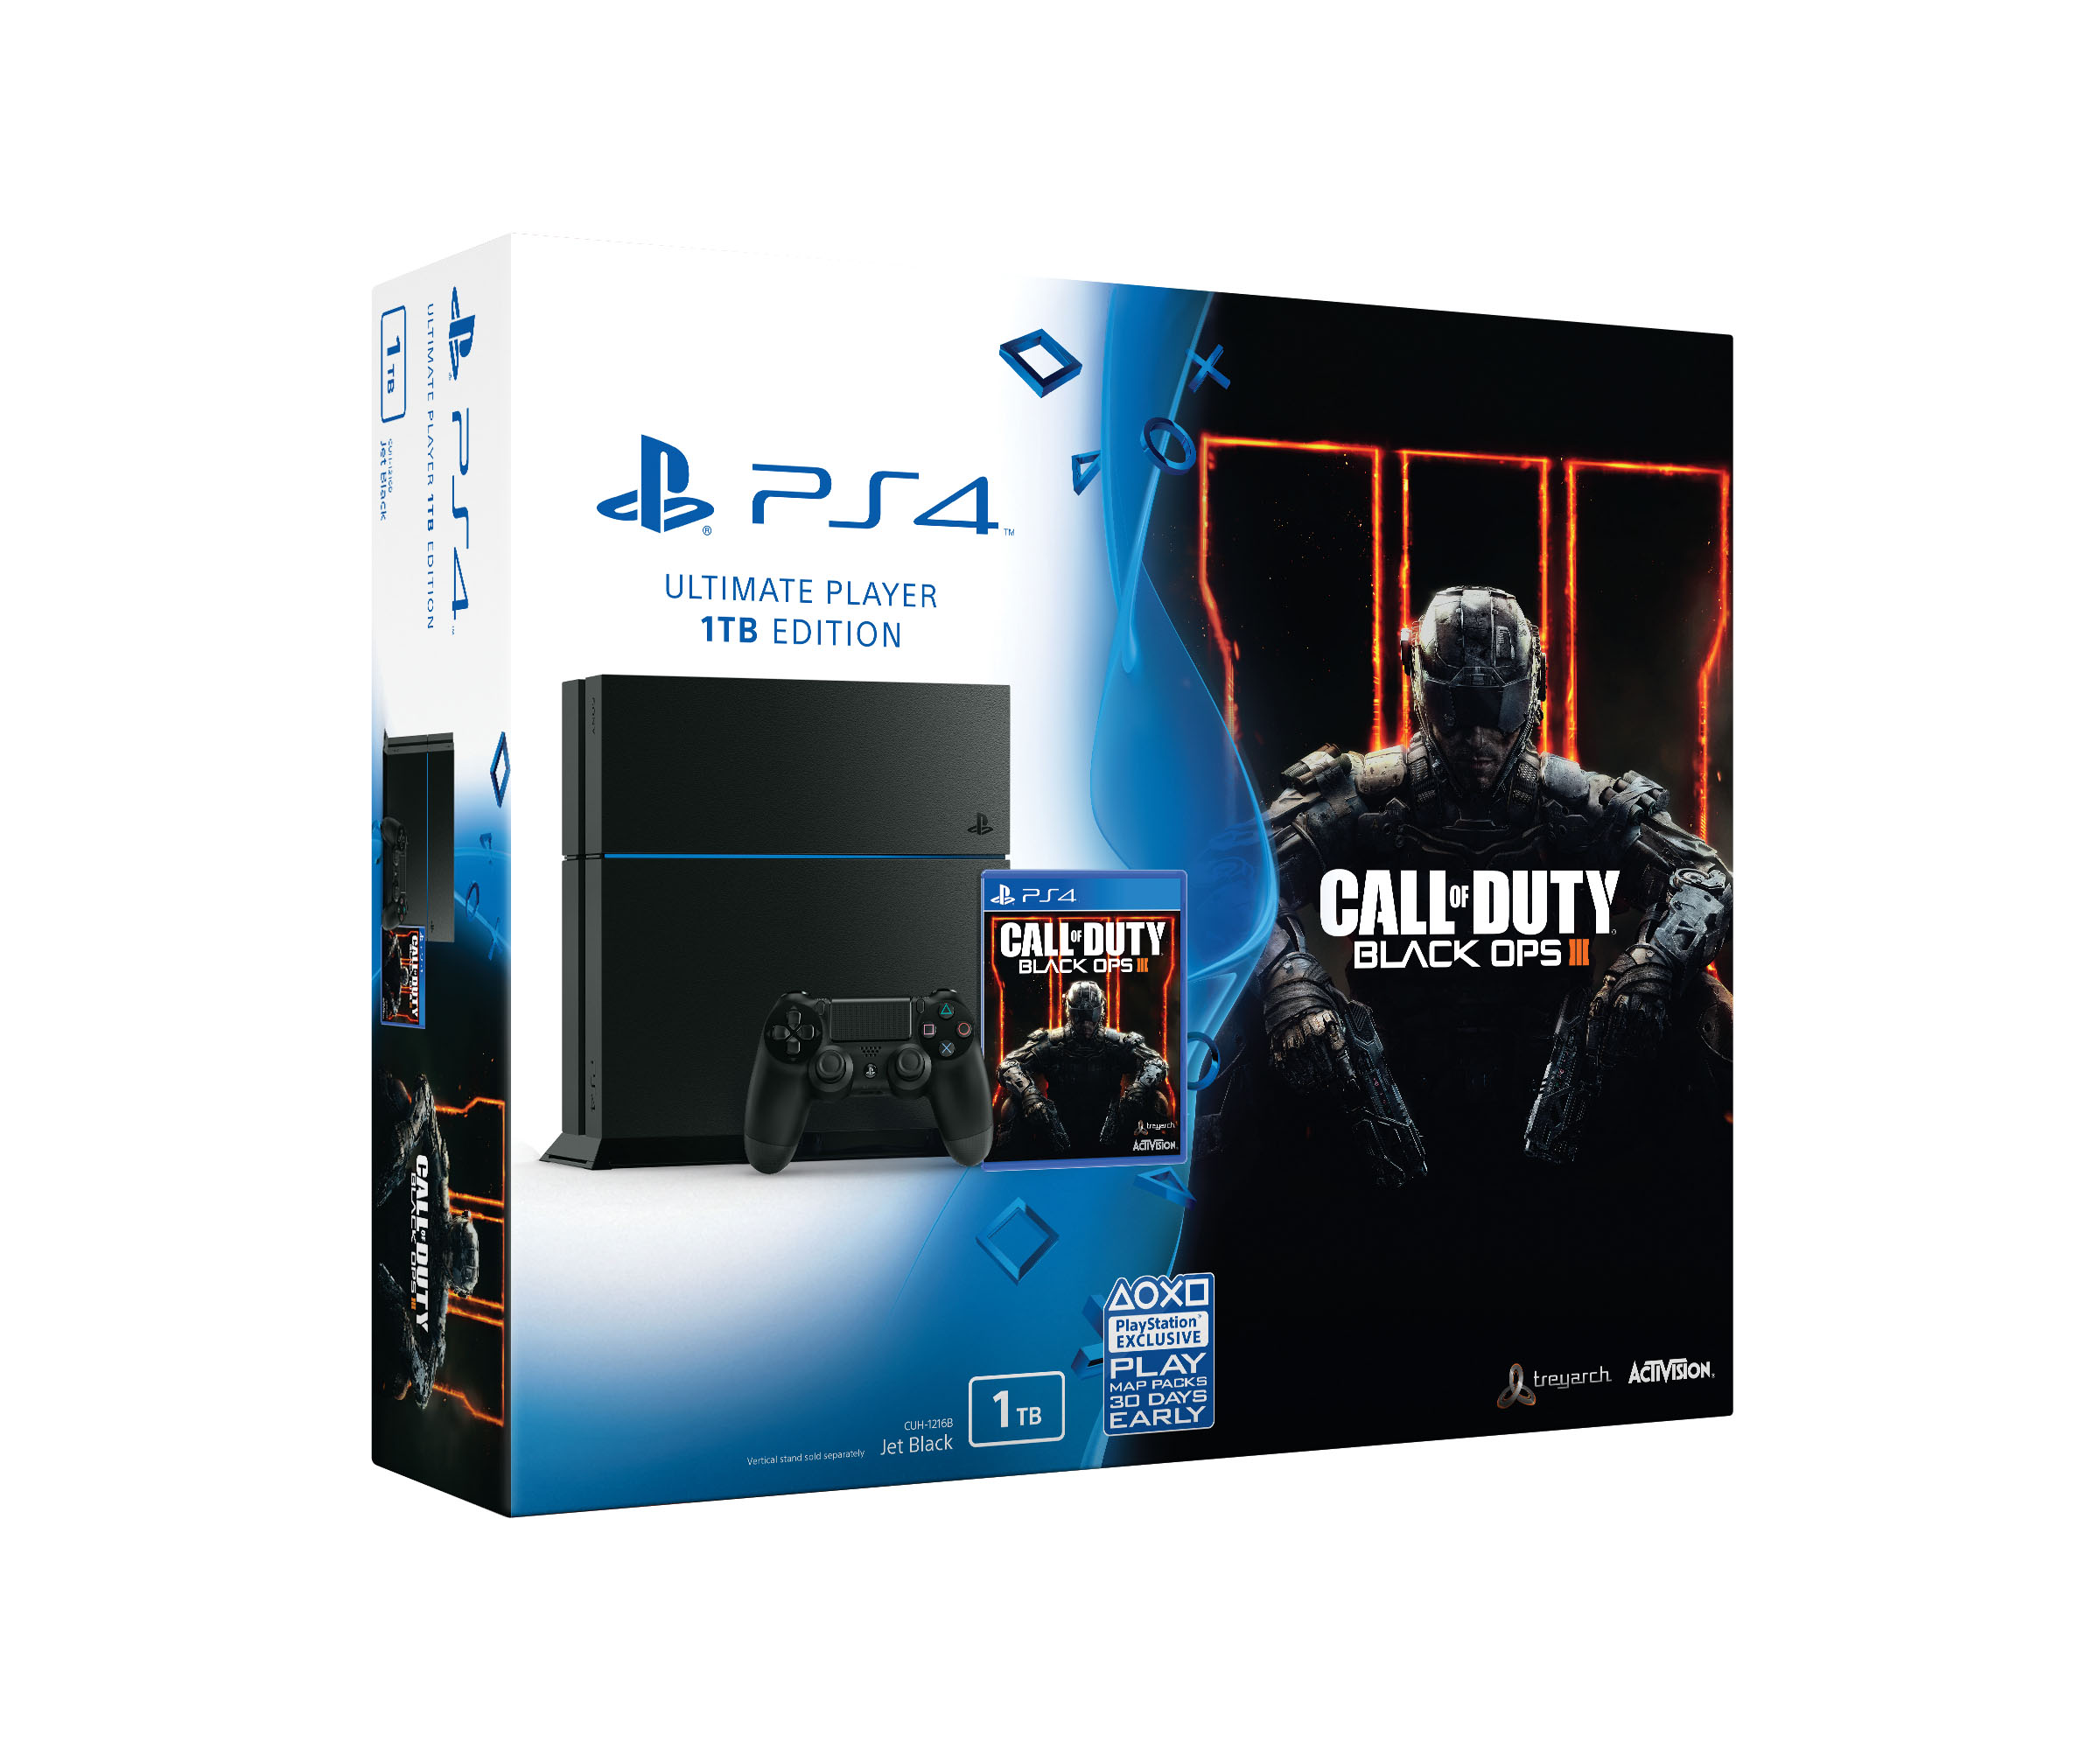 Blac Ops 3